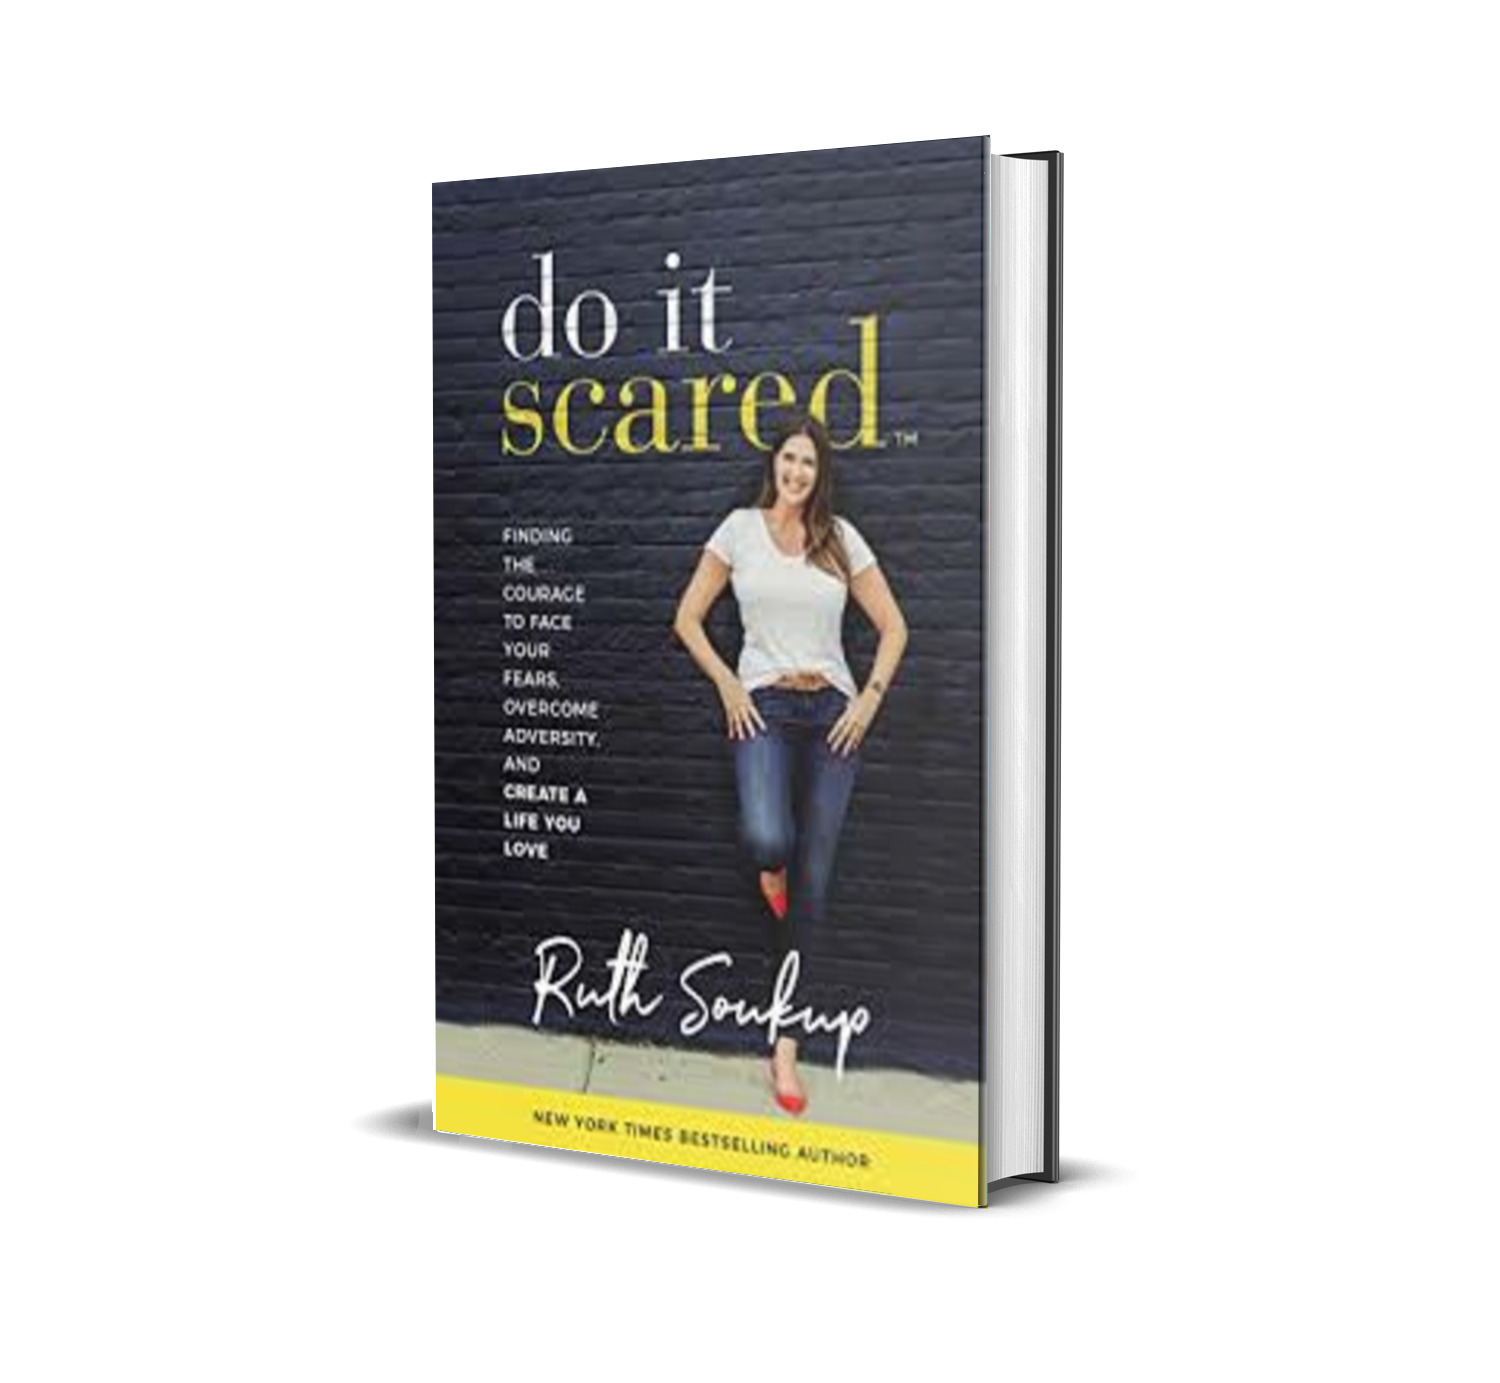 Do It Scared : Finding the Courage to Face Your Fears, Overcome Adversity, and Create a Life You Love - Ruth Soukup